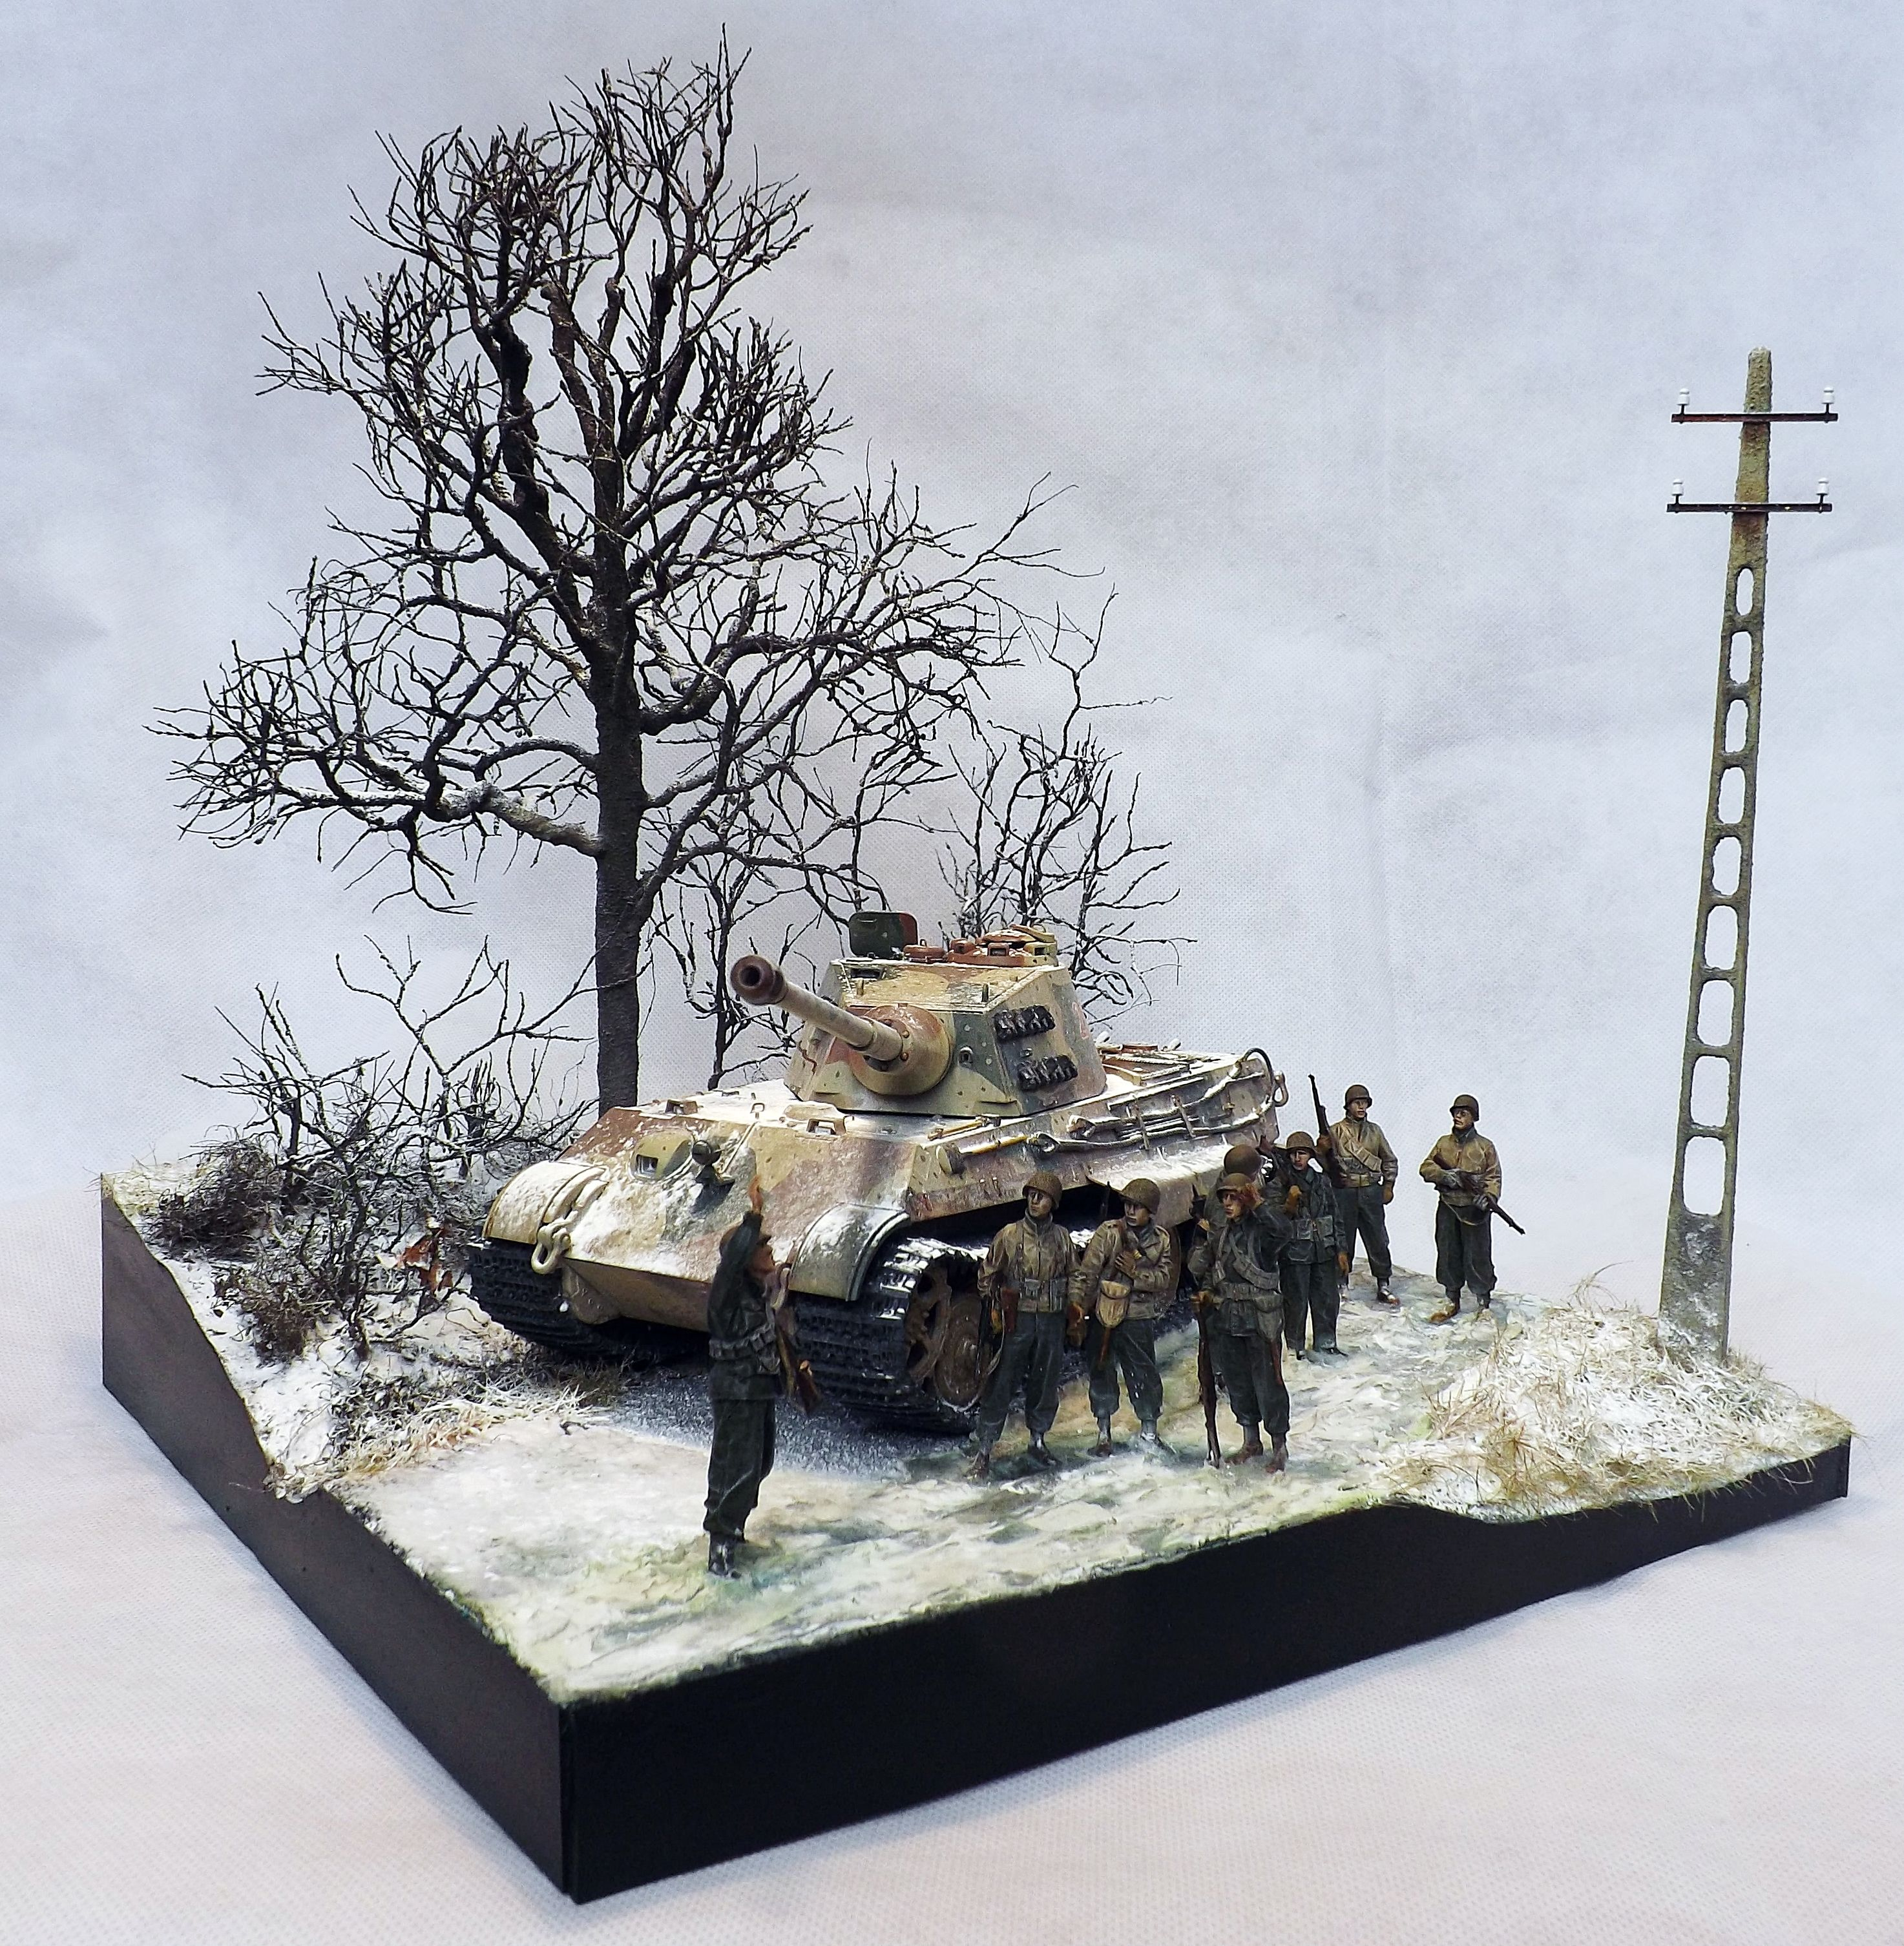 The King Is Dead Ardennes December 1944 1 35 Scale Diorama By Terence Young Winter Diorama Tank Diorama Military Diorama